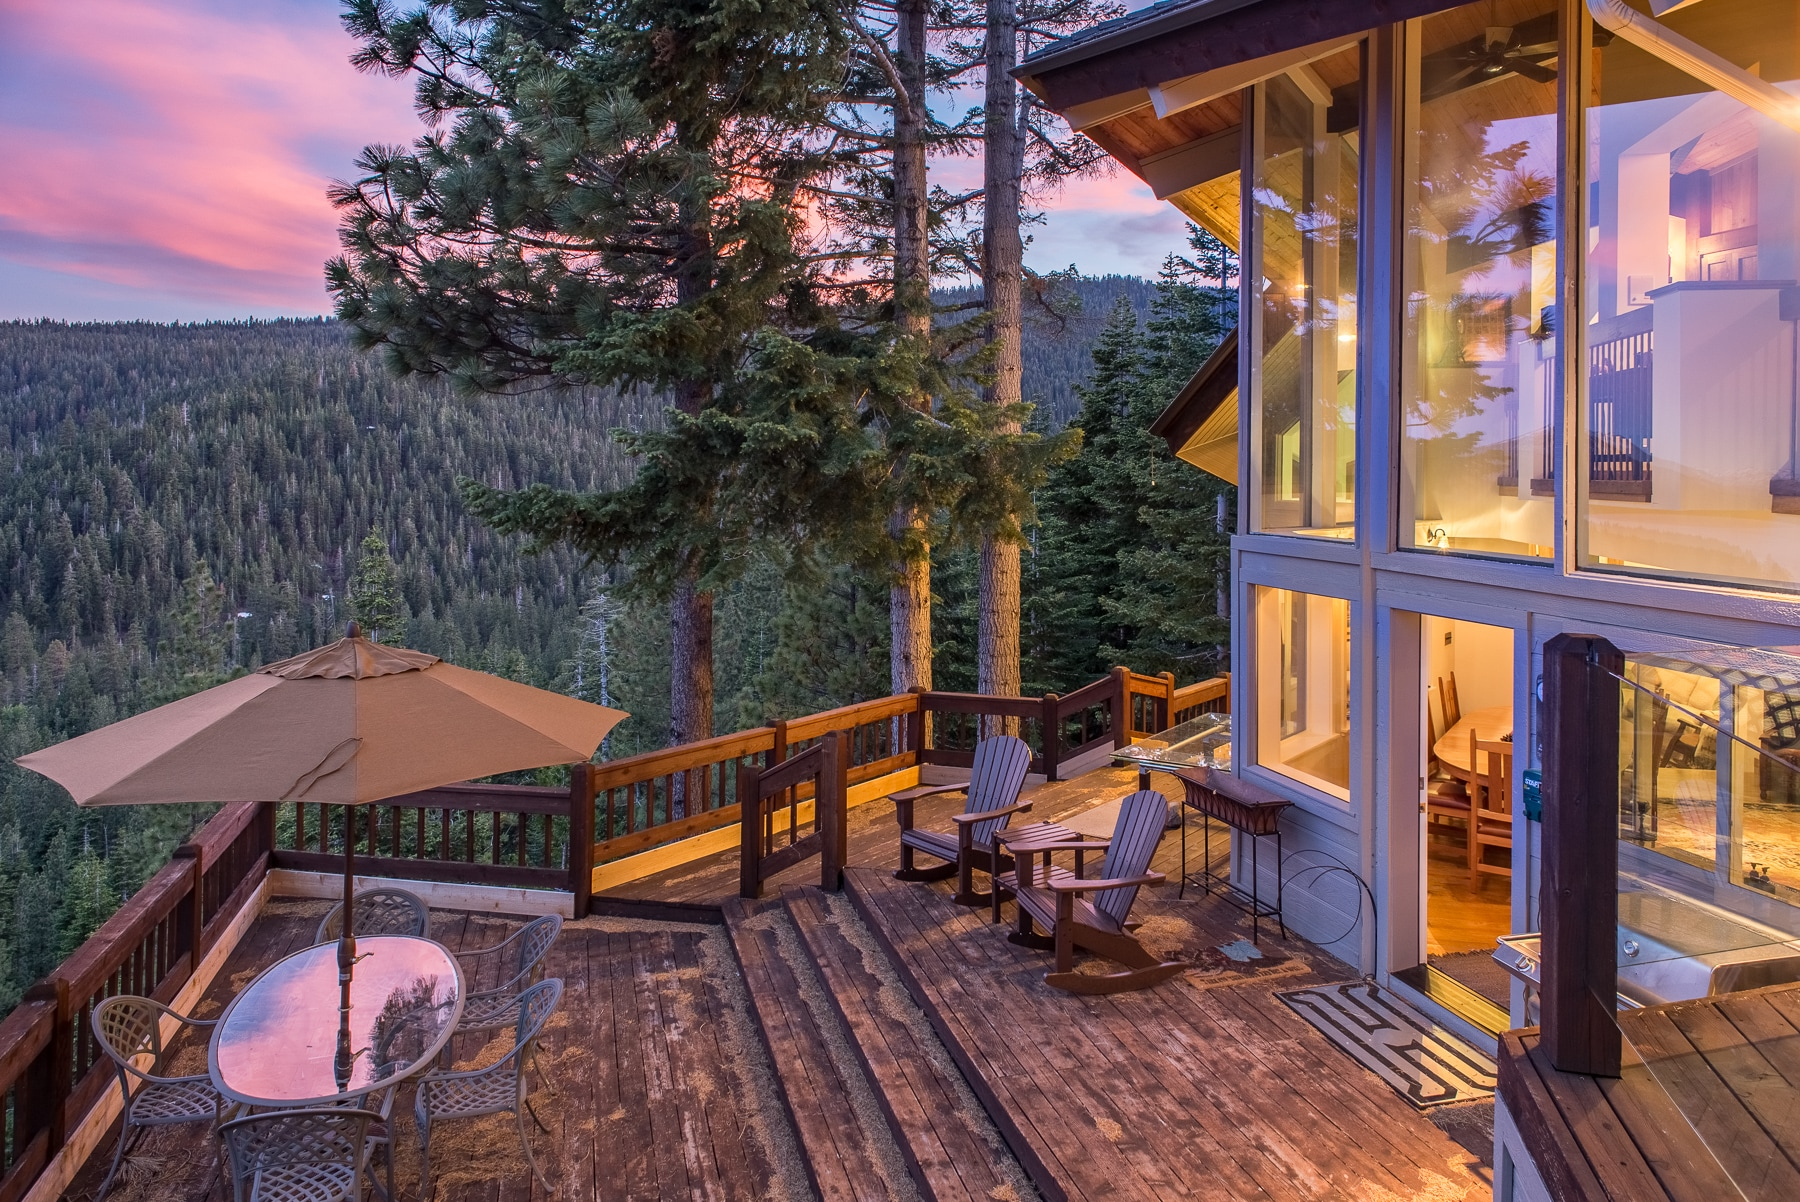 Watch stupendous sunsets from the privacy of the deck.